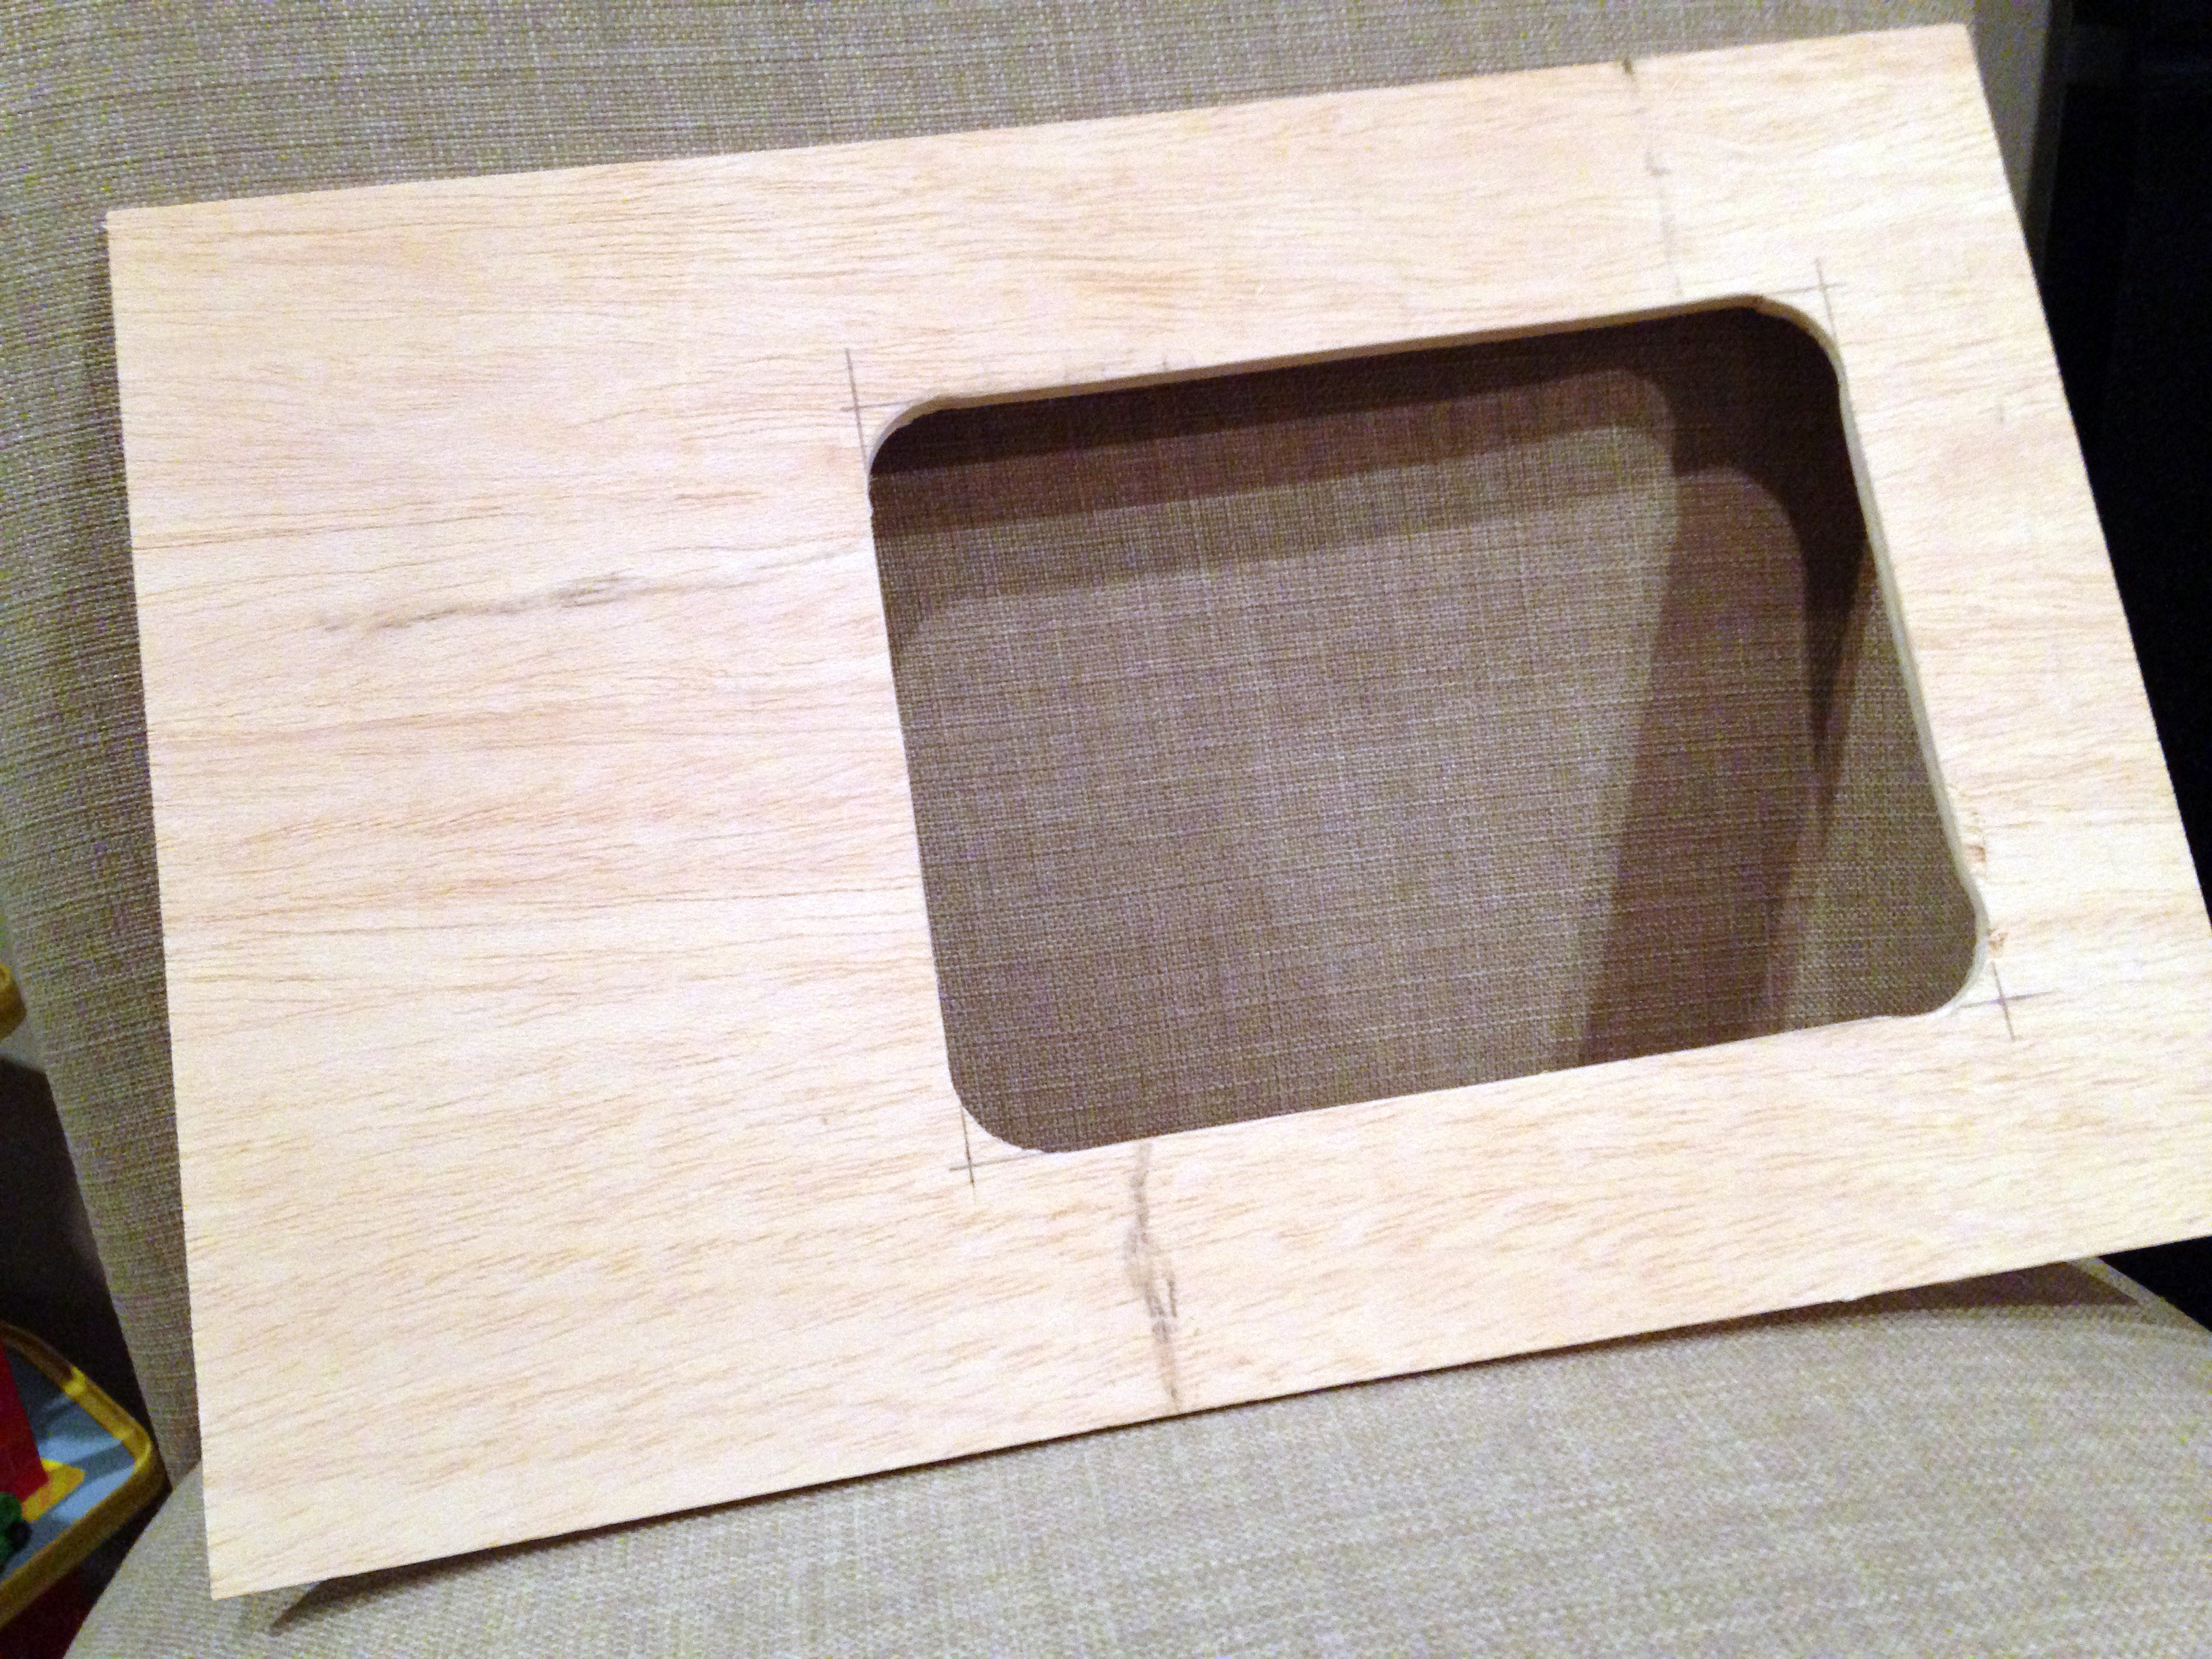 Making a plexiglass cover for a wooden computer case